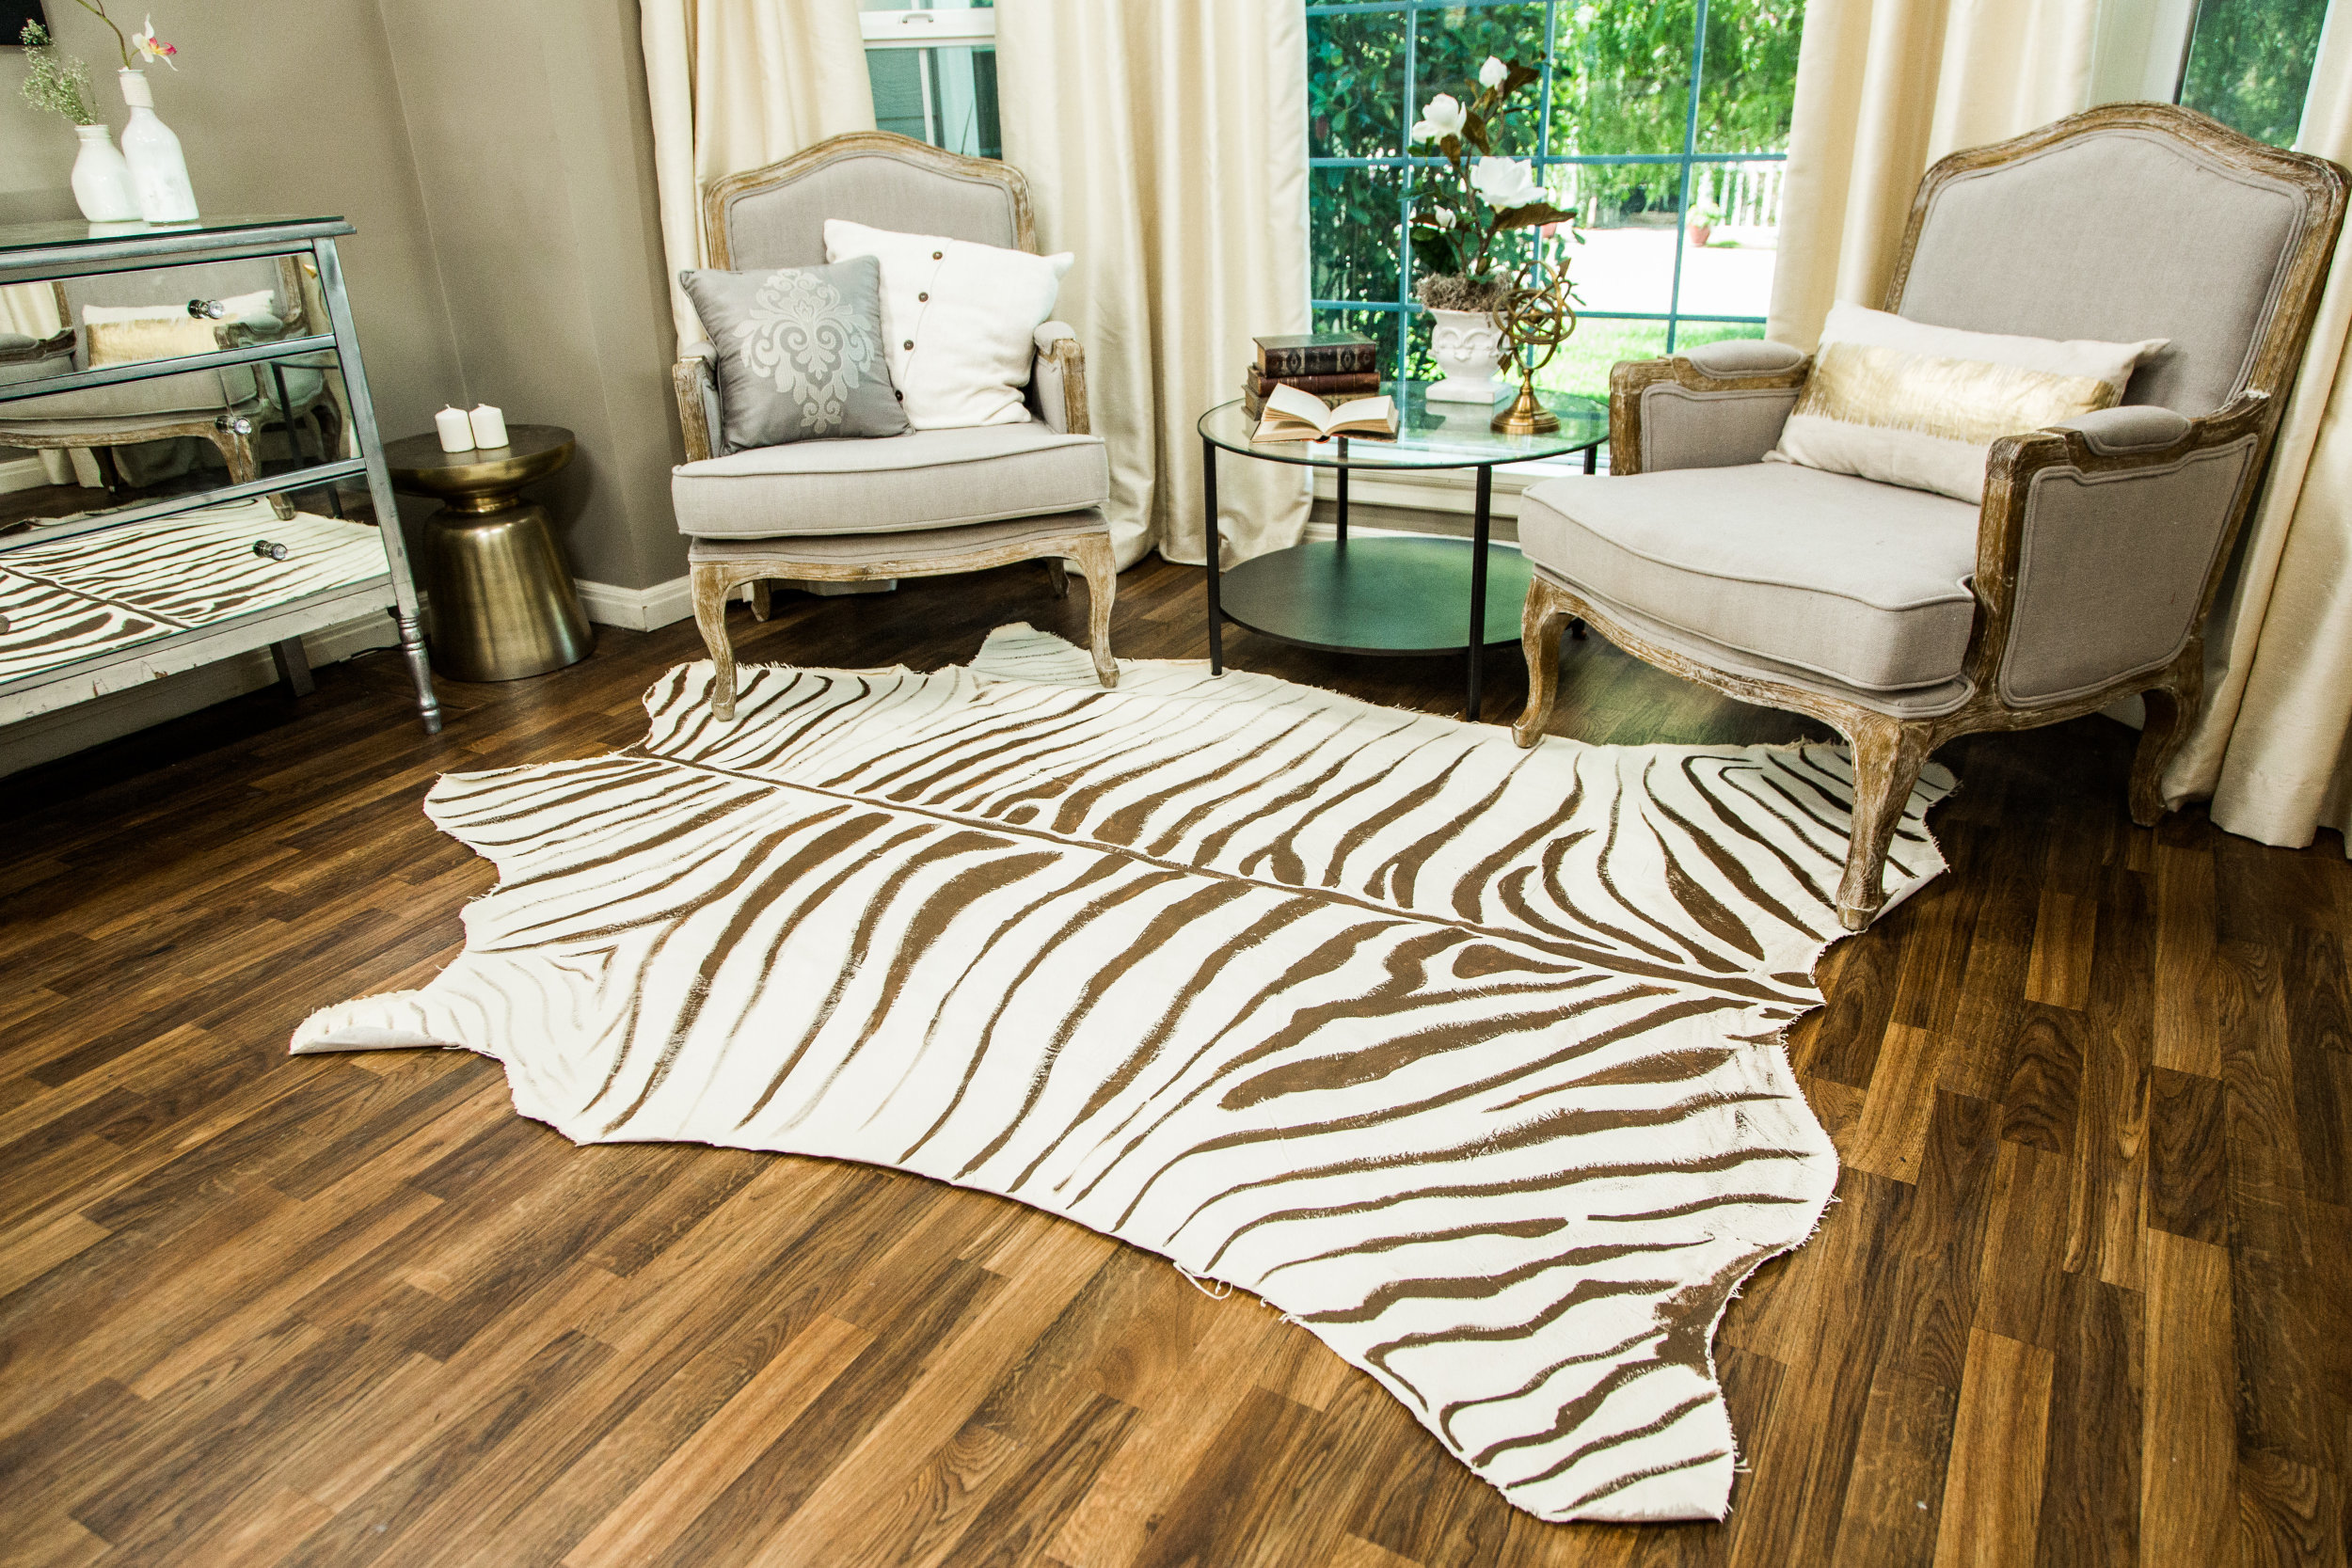 How To Diy Faux Zebra Rug Home Family Hallmark Channel